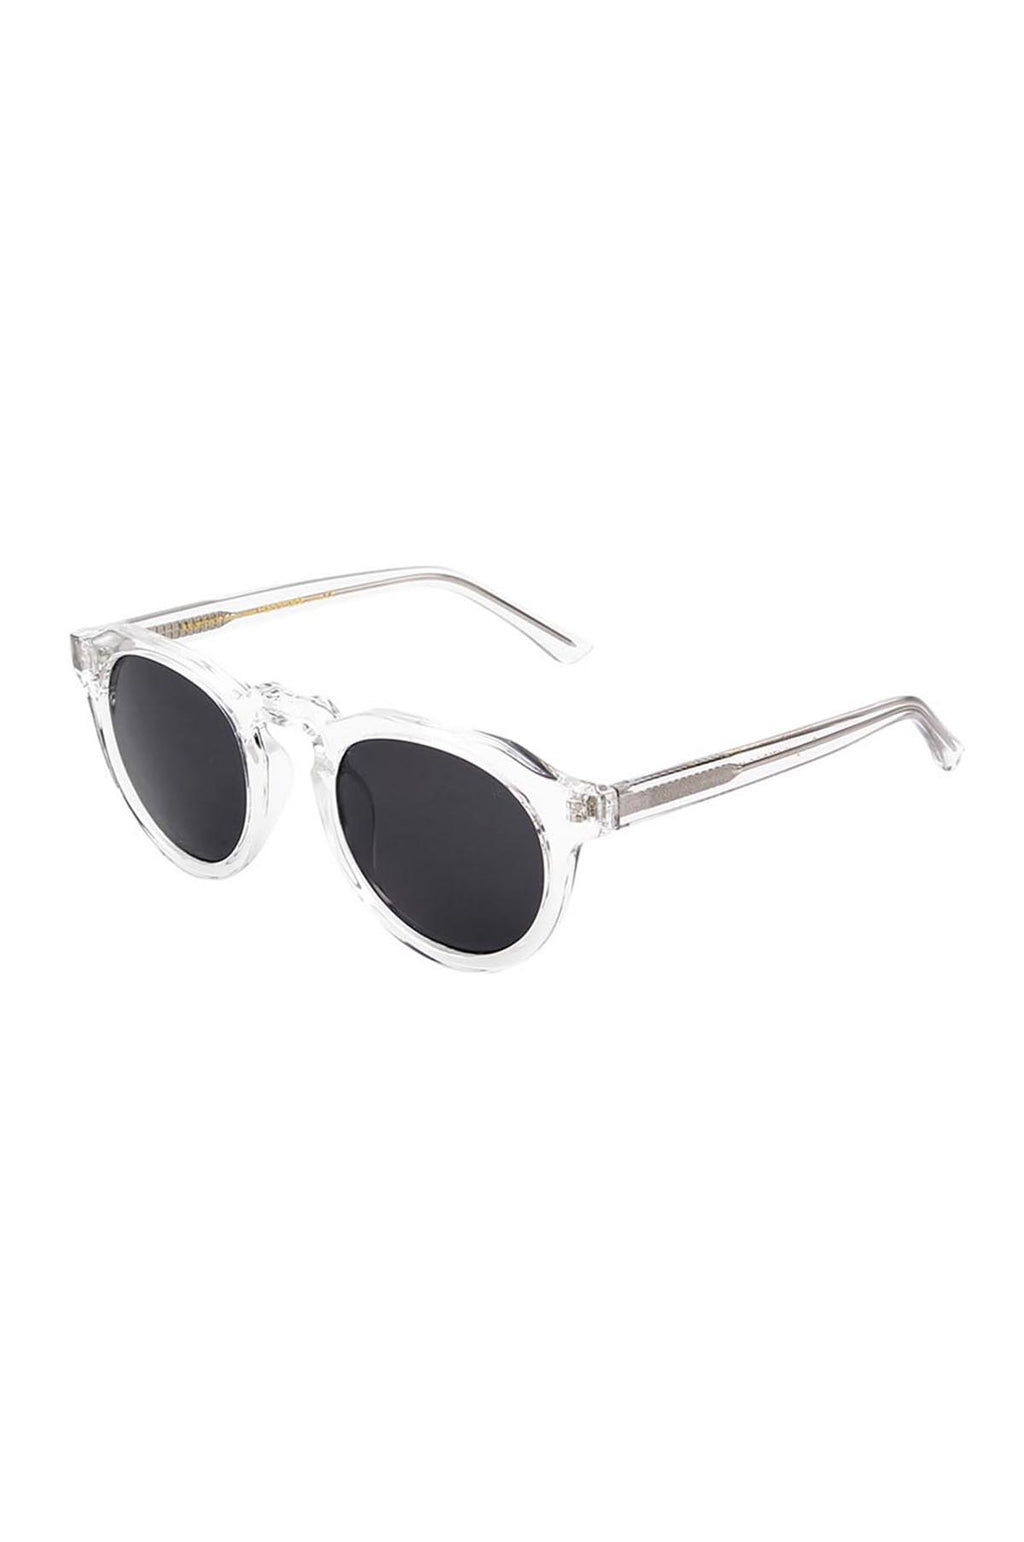 George Sunglasses in Crystal